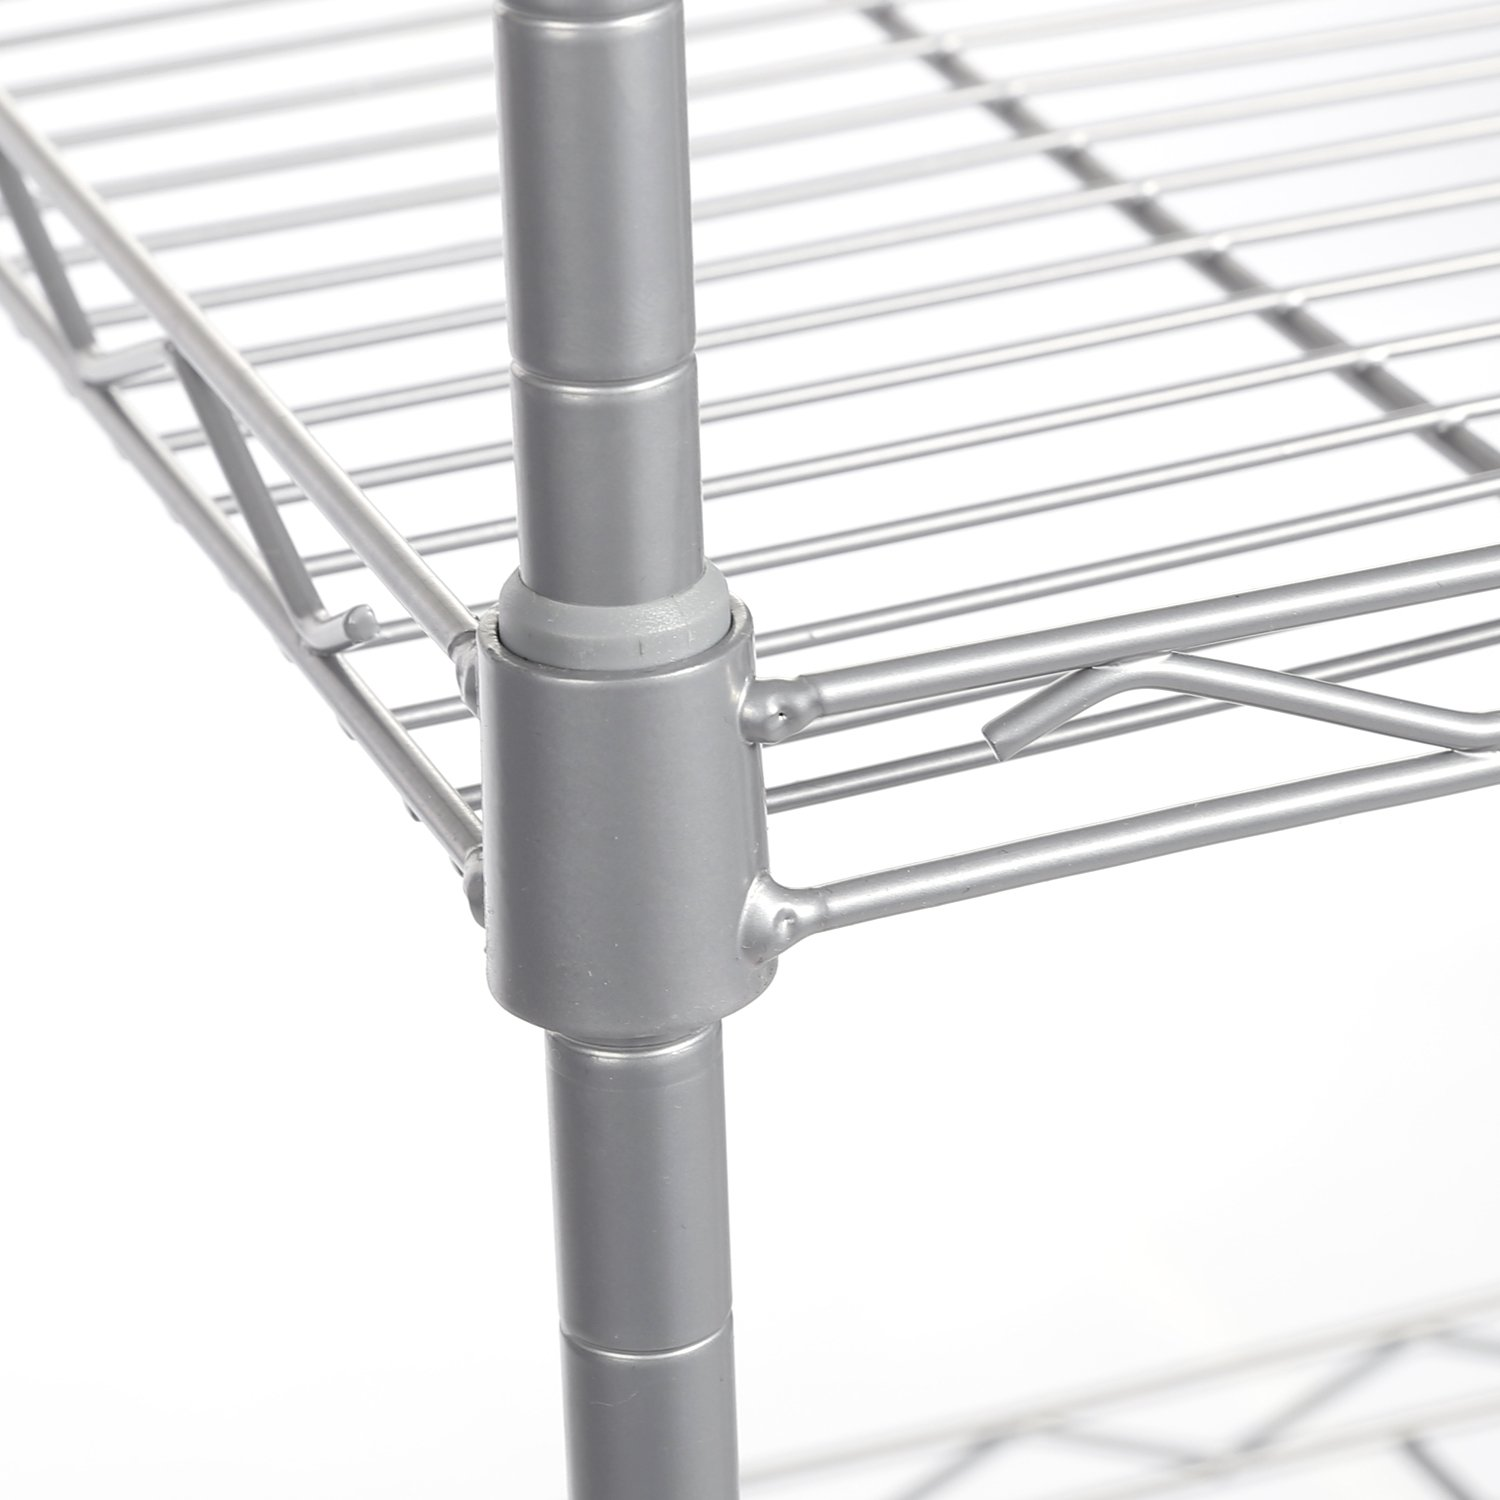 Homdox 6-Tier Storage Shelf Wire Shelving Unit Free Standing Rack Organization with Adjustable Leveling Feet Silver Hom5169-S Stainless Side Hooks